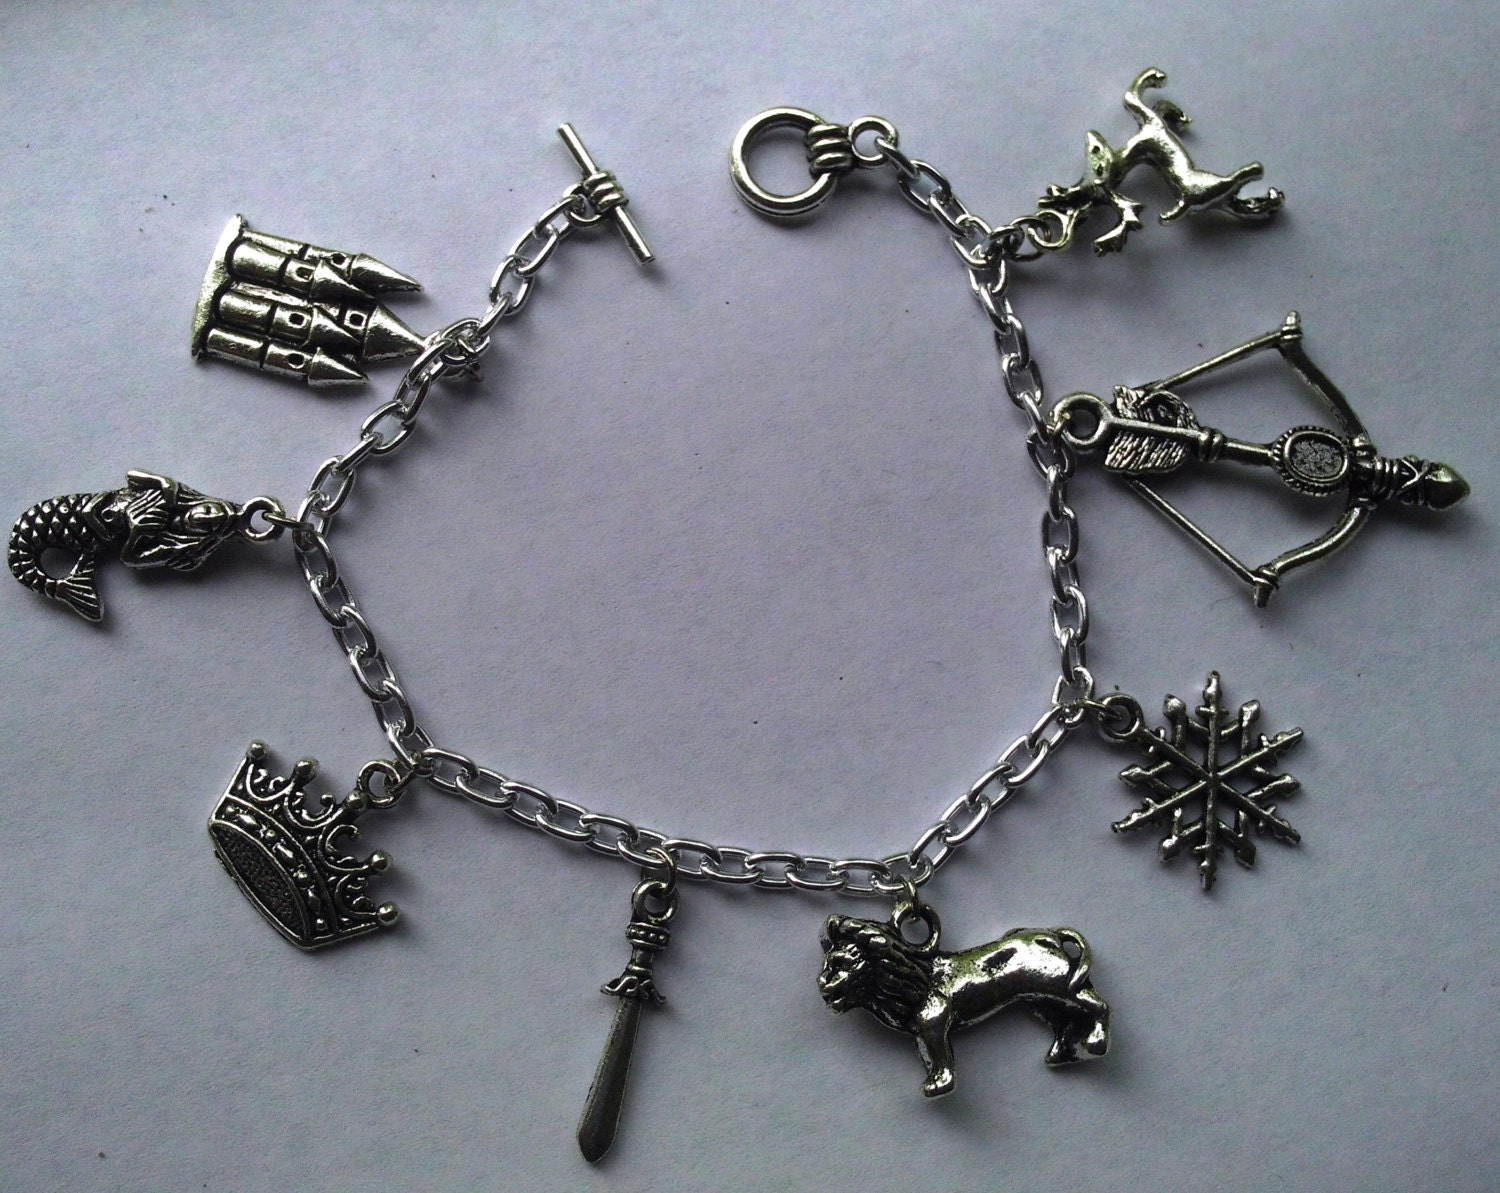 Narnia: The Lion, The Witch, and The Wardrobe inspired silver charm bracelet